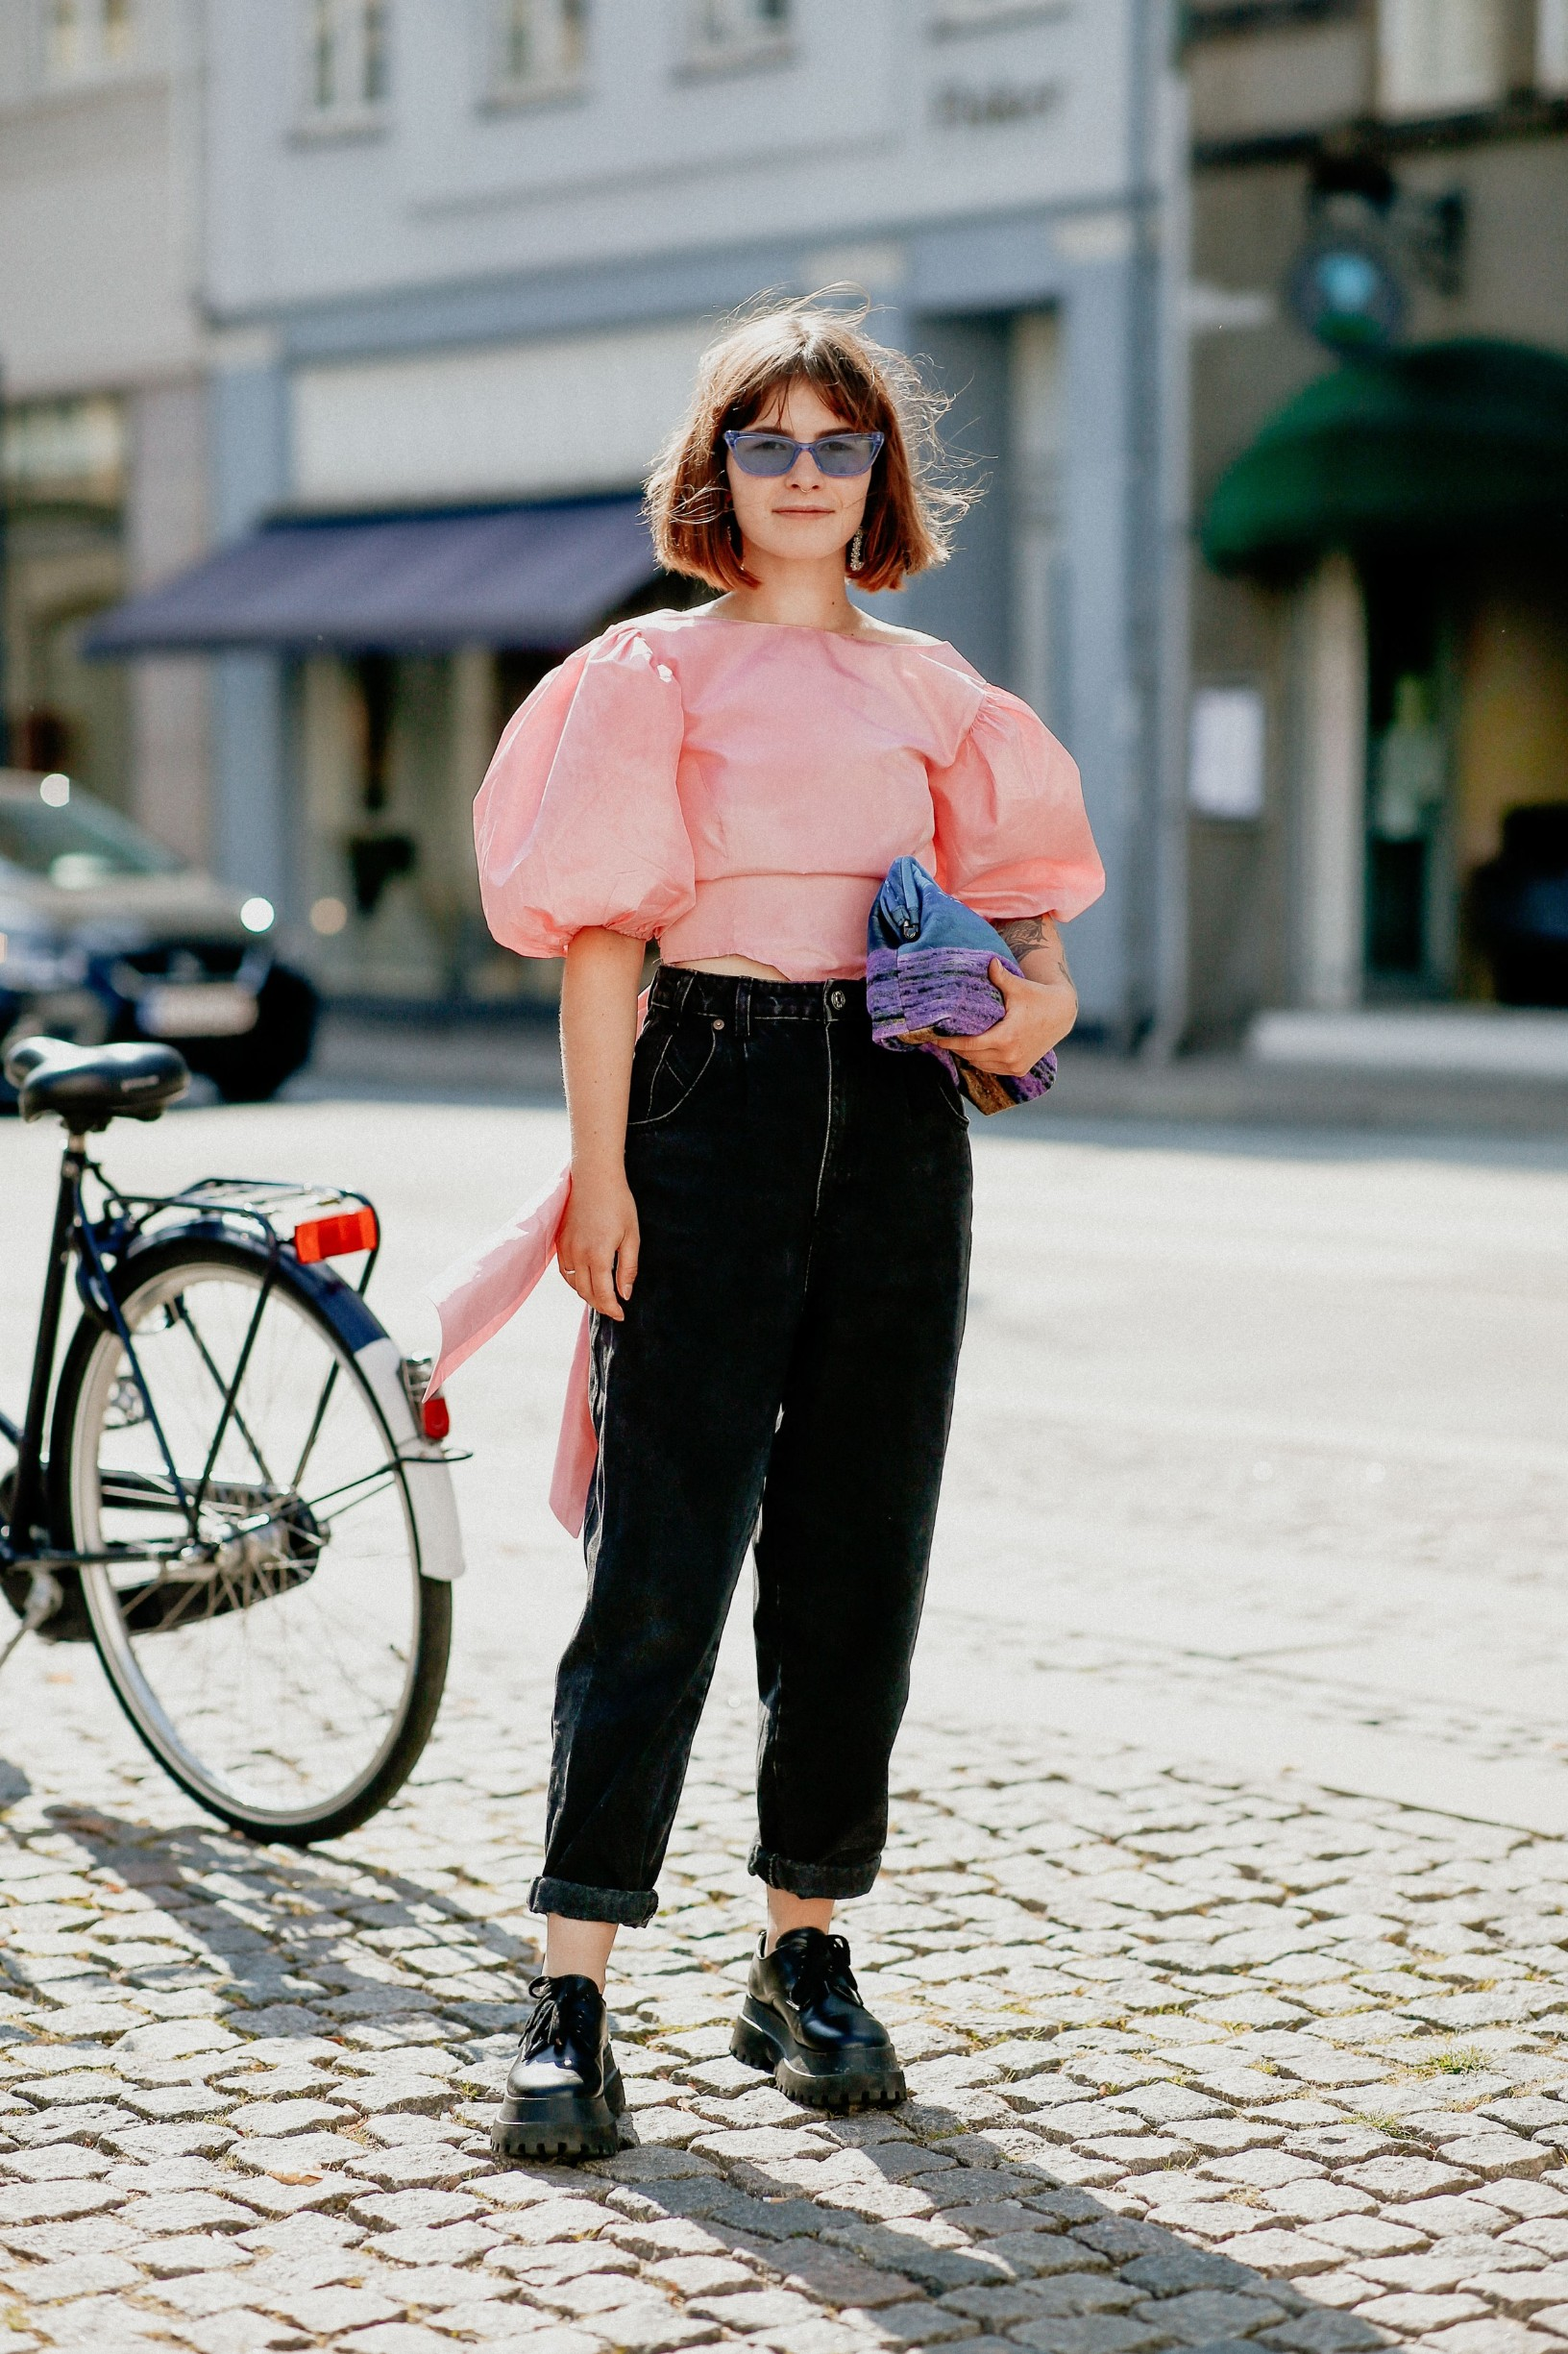 Street style, Zofia Piotrowski arriving at Mfpen Spring Summer 2021 show, held at Bredgade, Copenhagen, Denmark, on August 12, 2020.,Image: 554930267, License: Rights-managed, Restrictions: , Model Release: no, Credit line: Bertrand-Hillion Marie-Paola/ABACA / Abaca Press / Profimedia